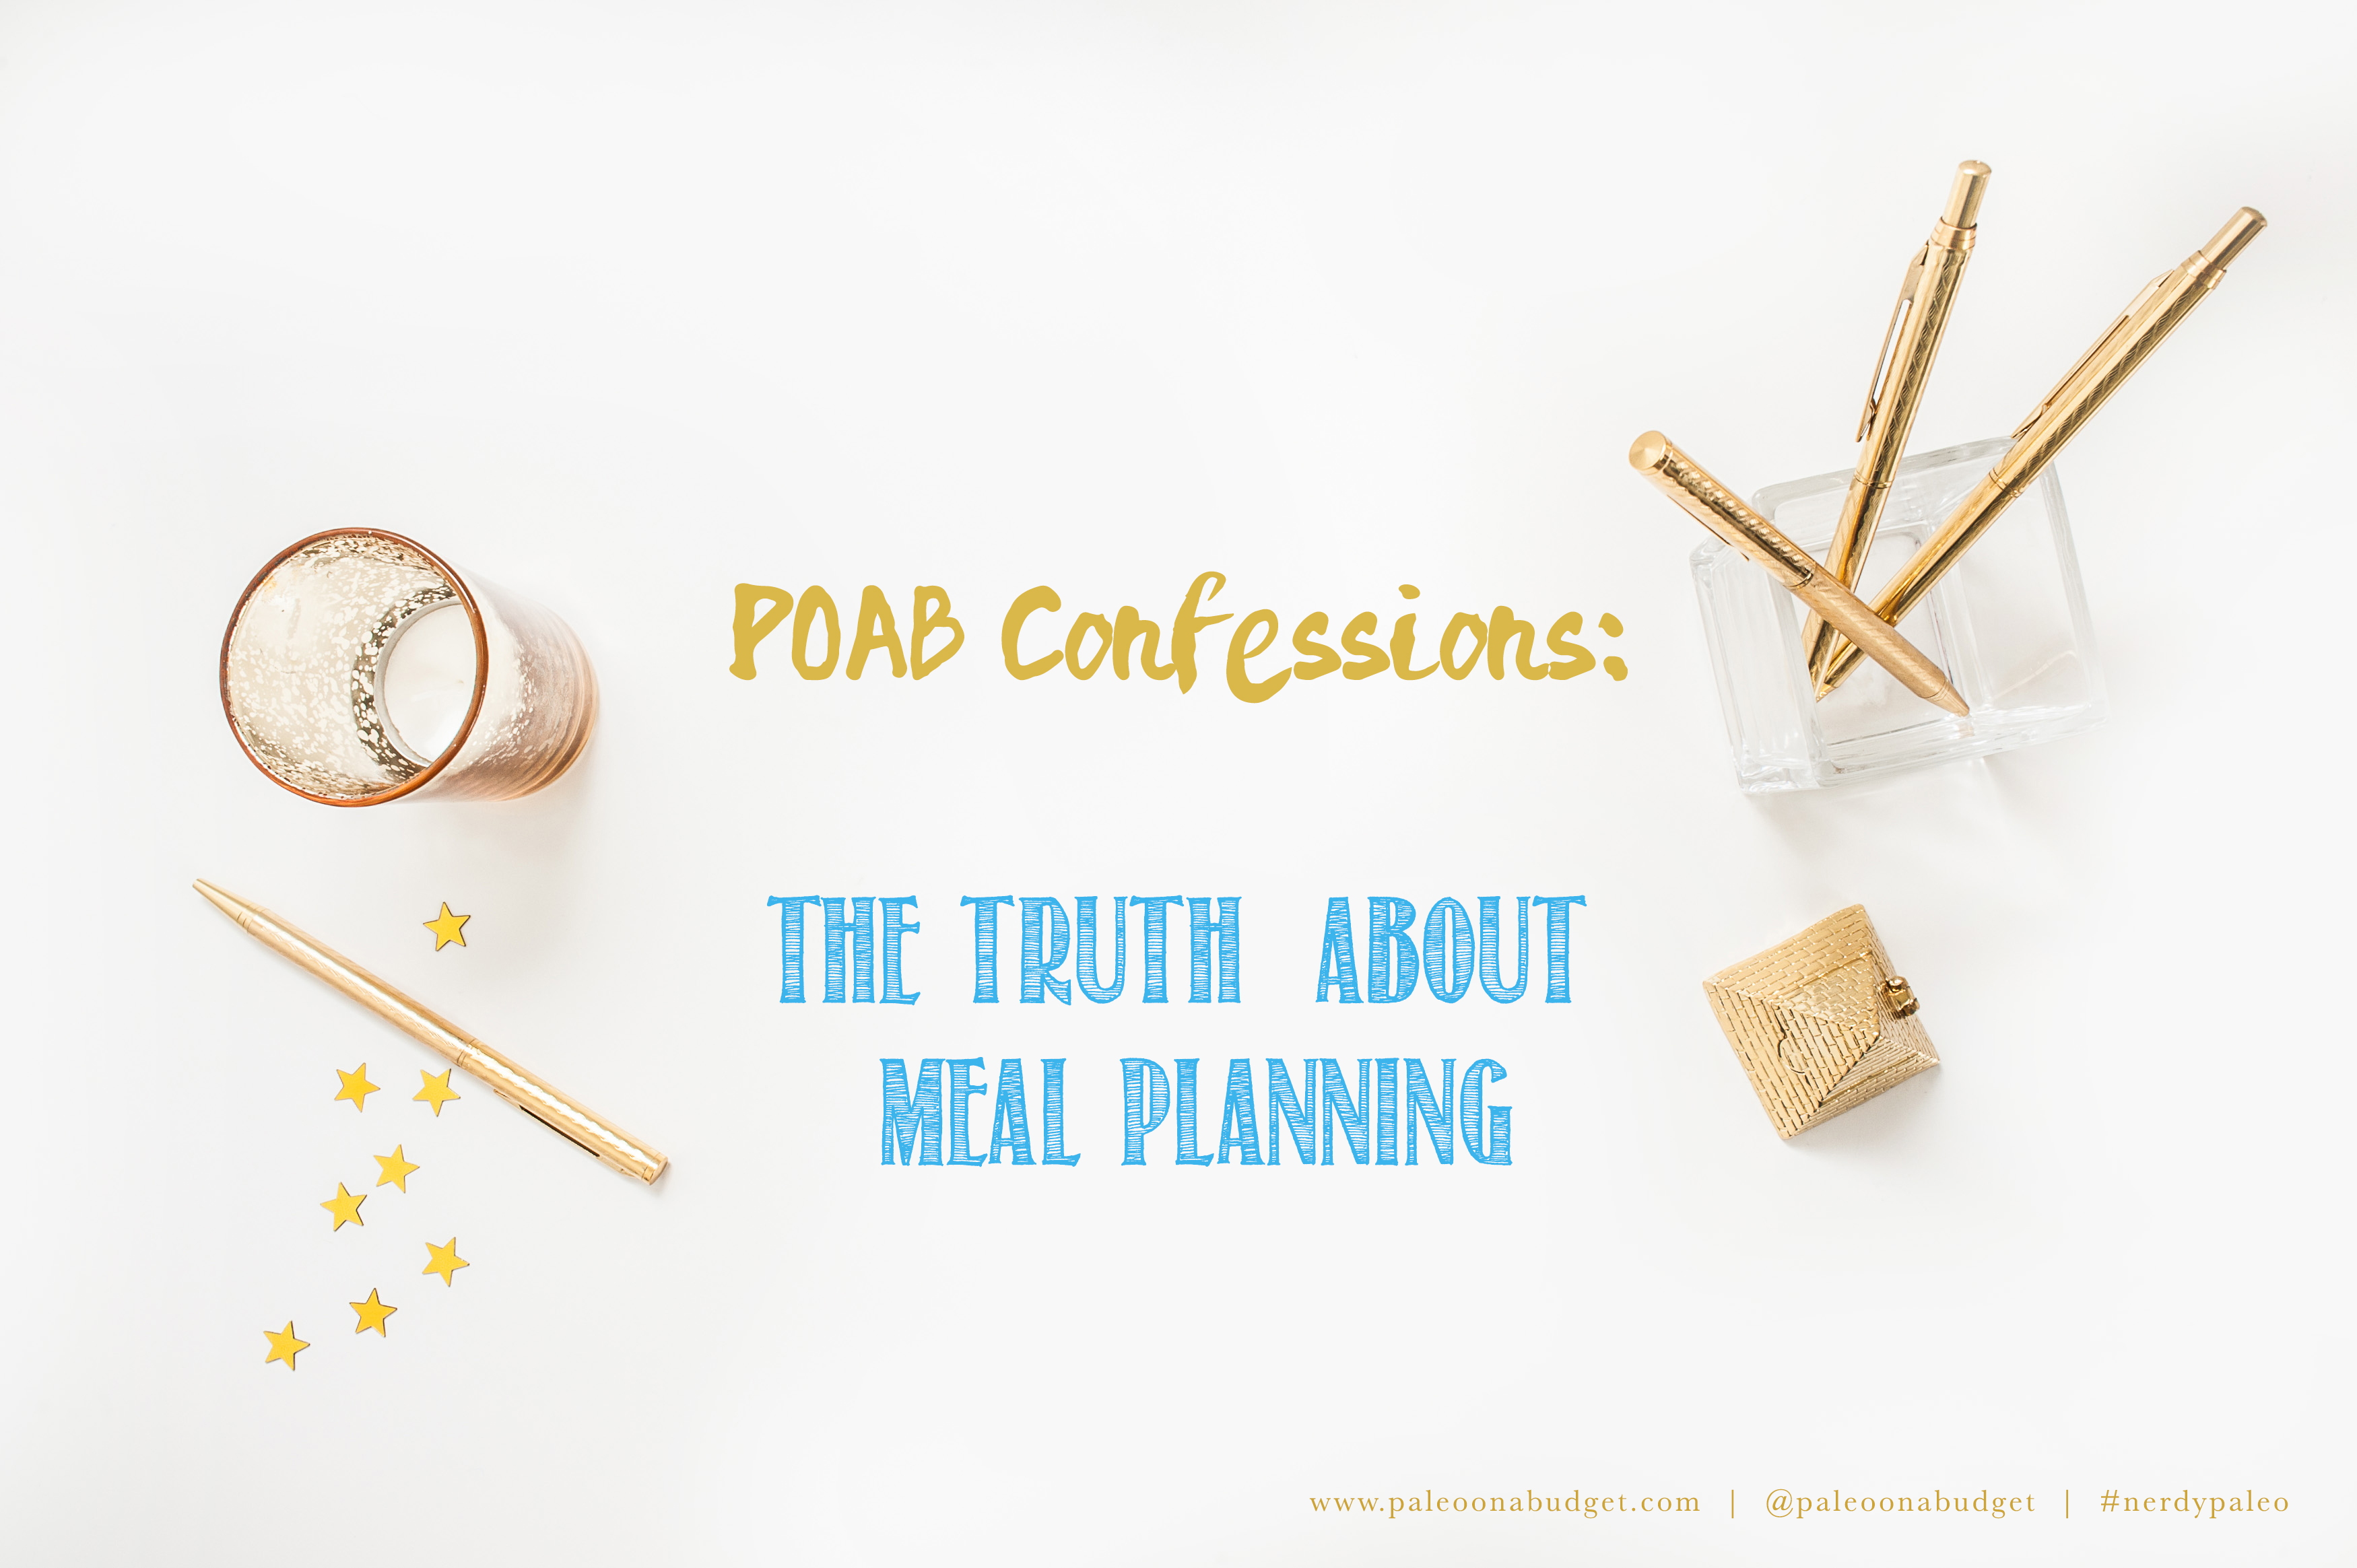 POAB Confessions: Meal Planning